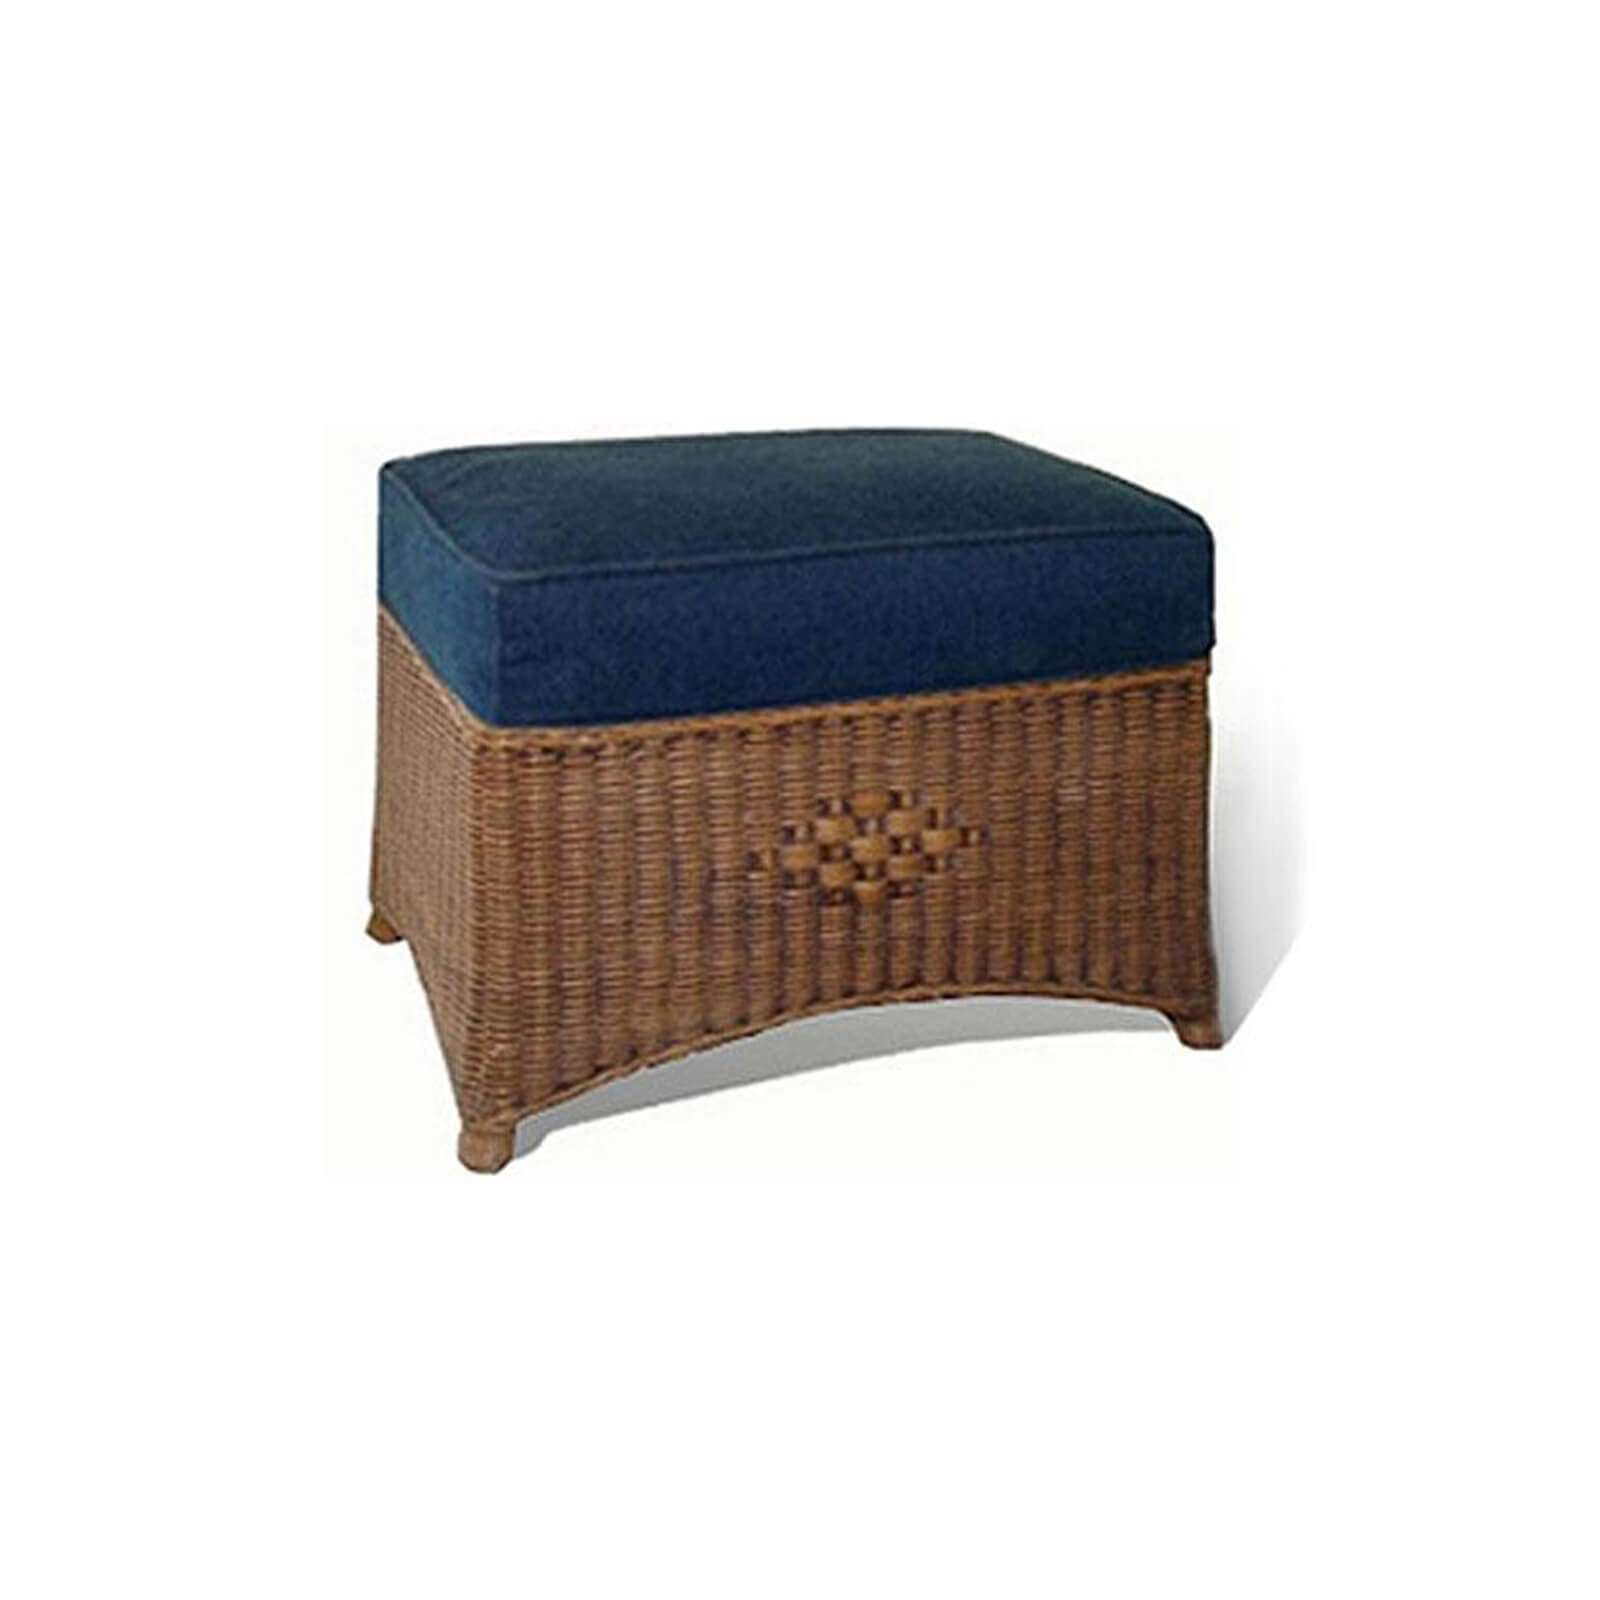 CALYPSO OTTOMAN 1 - STUART MEMBERY HOME COLLECTION